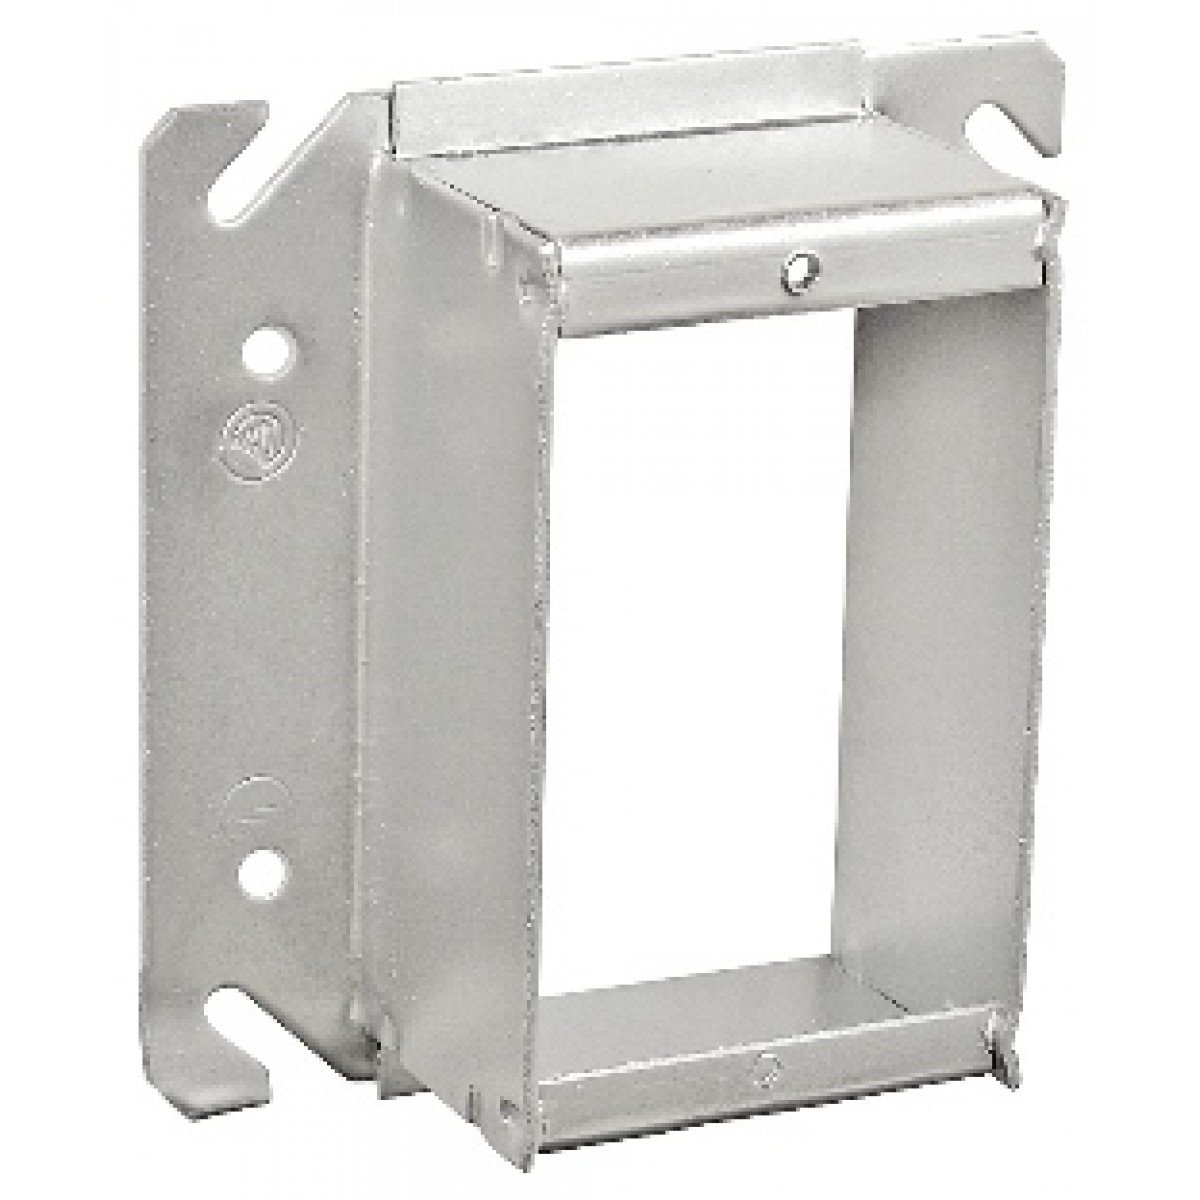 10 Pcs, 4'' Square One Gang Device Ring, Welded, 1/2 In. Raised, Zinc Plated Steel Used w/4'' Square Boxes to Mount Switches, Receptacles & Devices